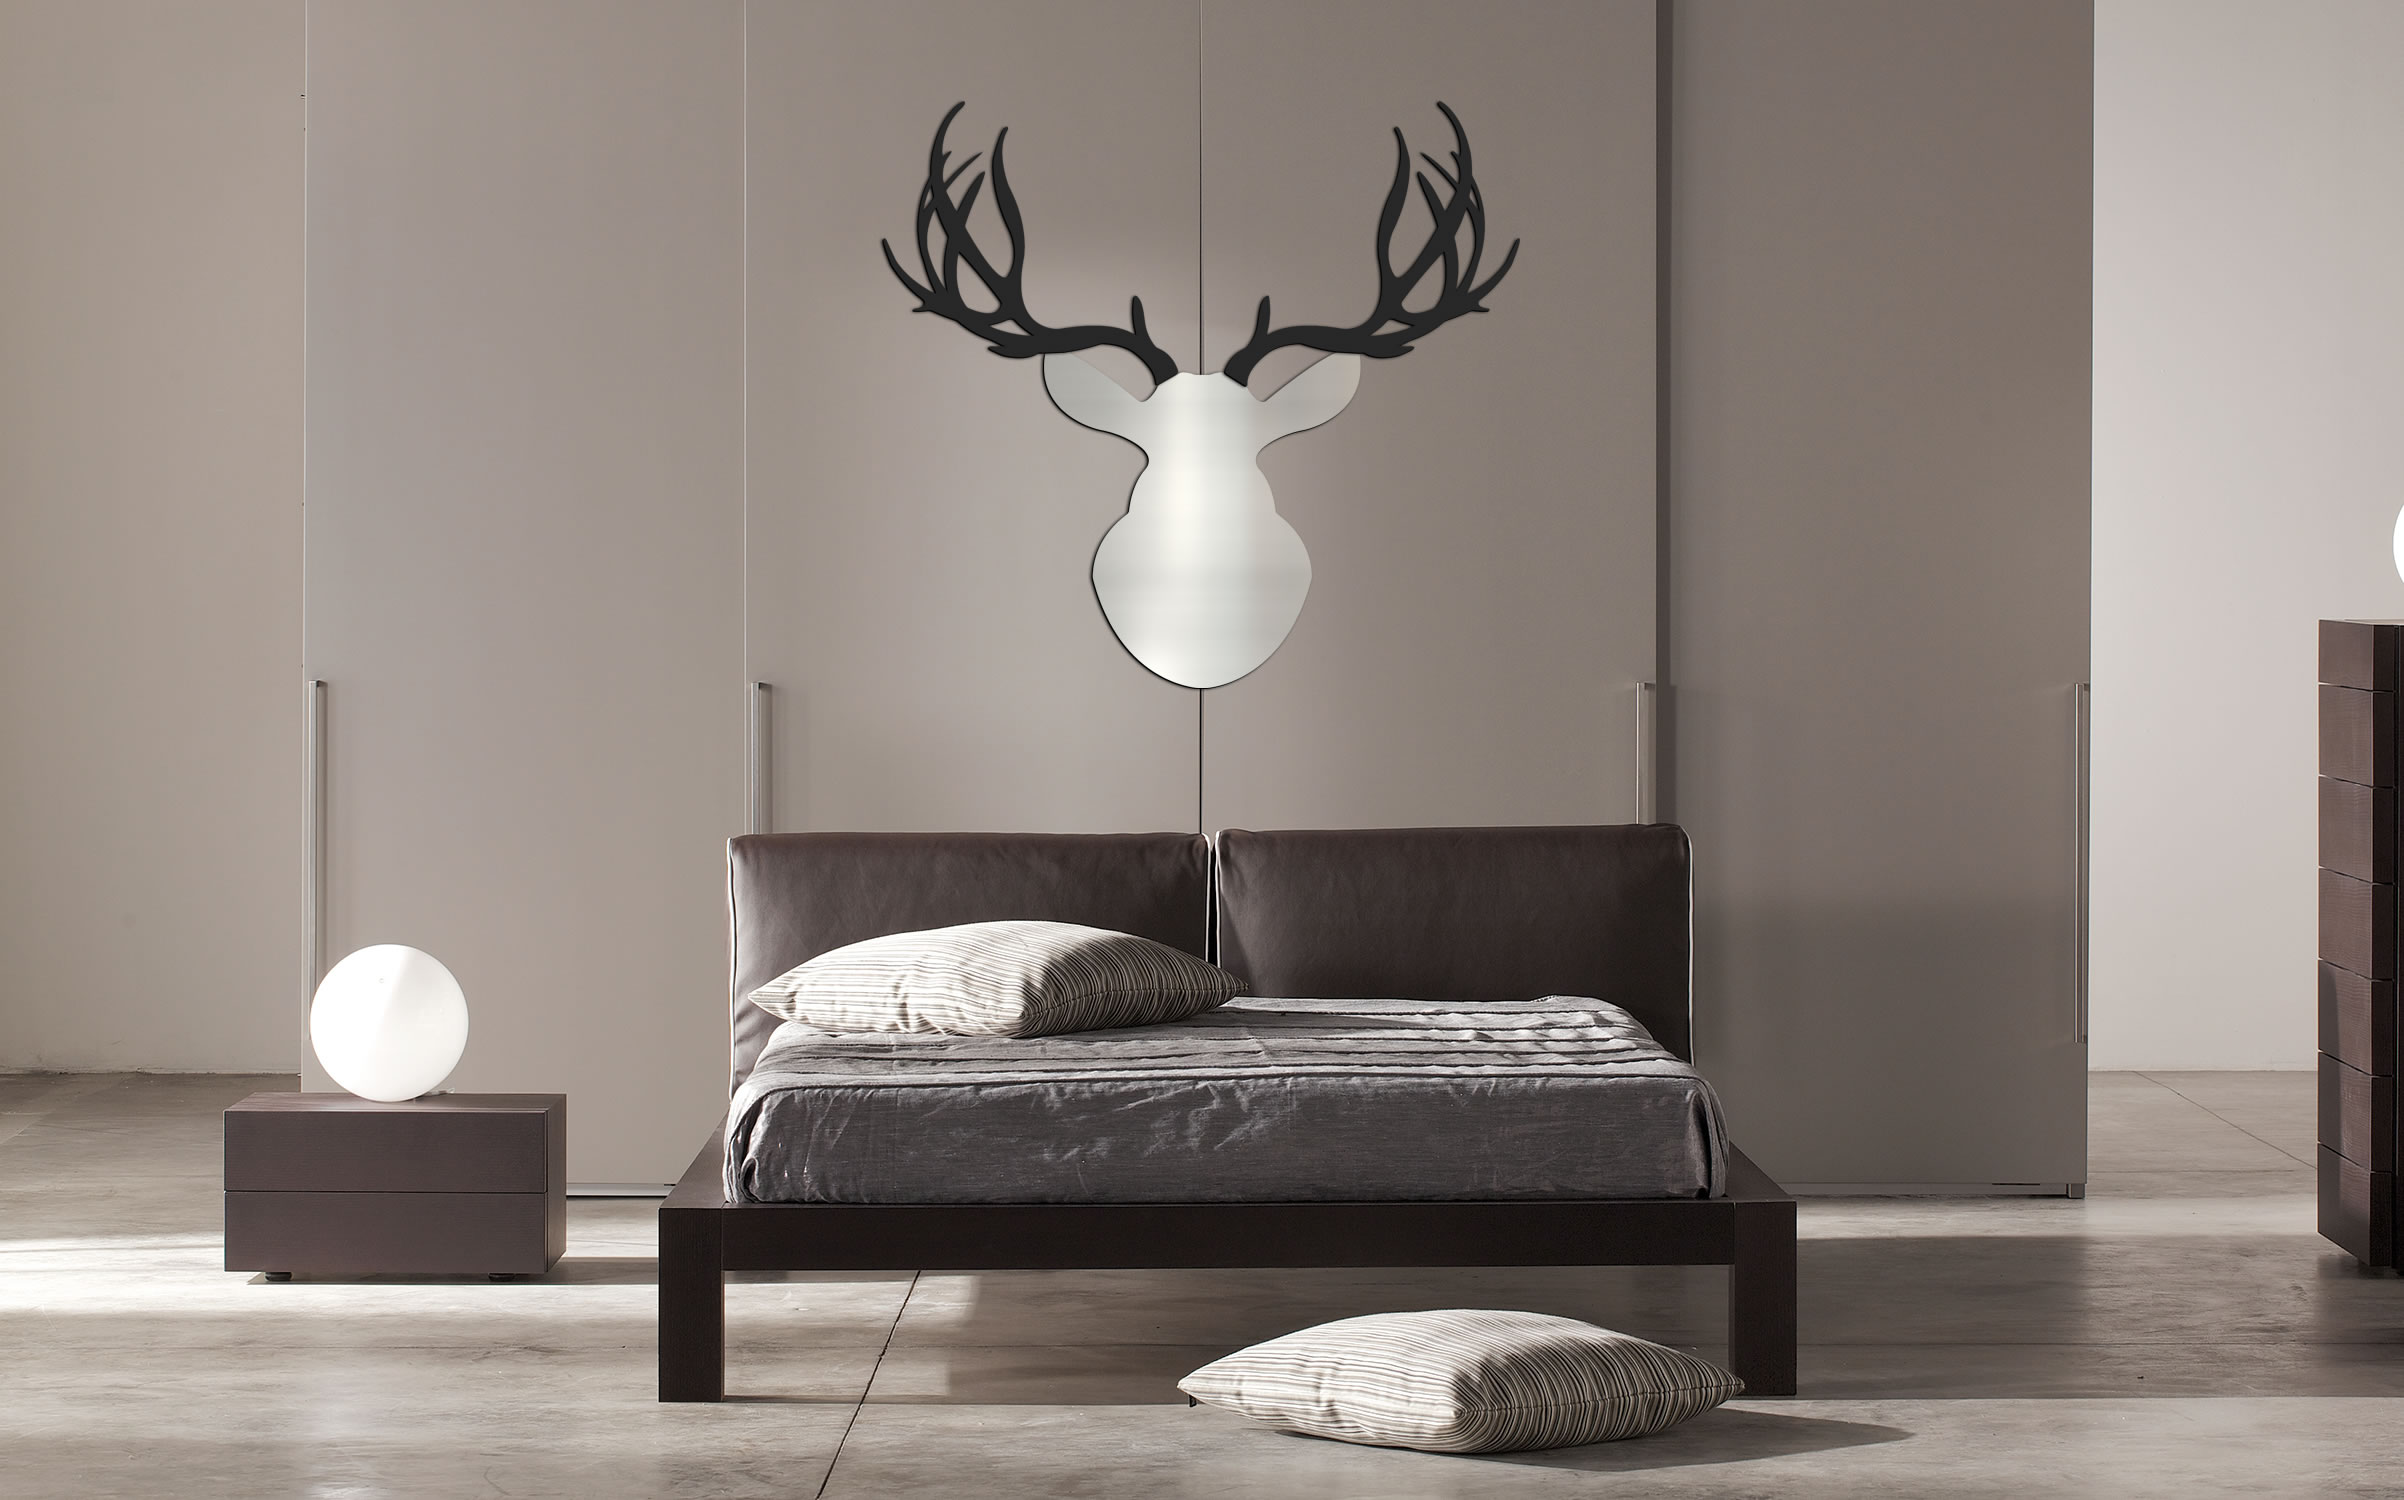 ENFORCER BUCK - 36x36 in. Silver & Black Deer Cut-Out - Lifestyle Image